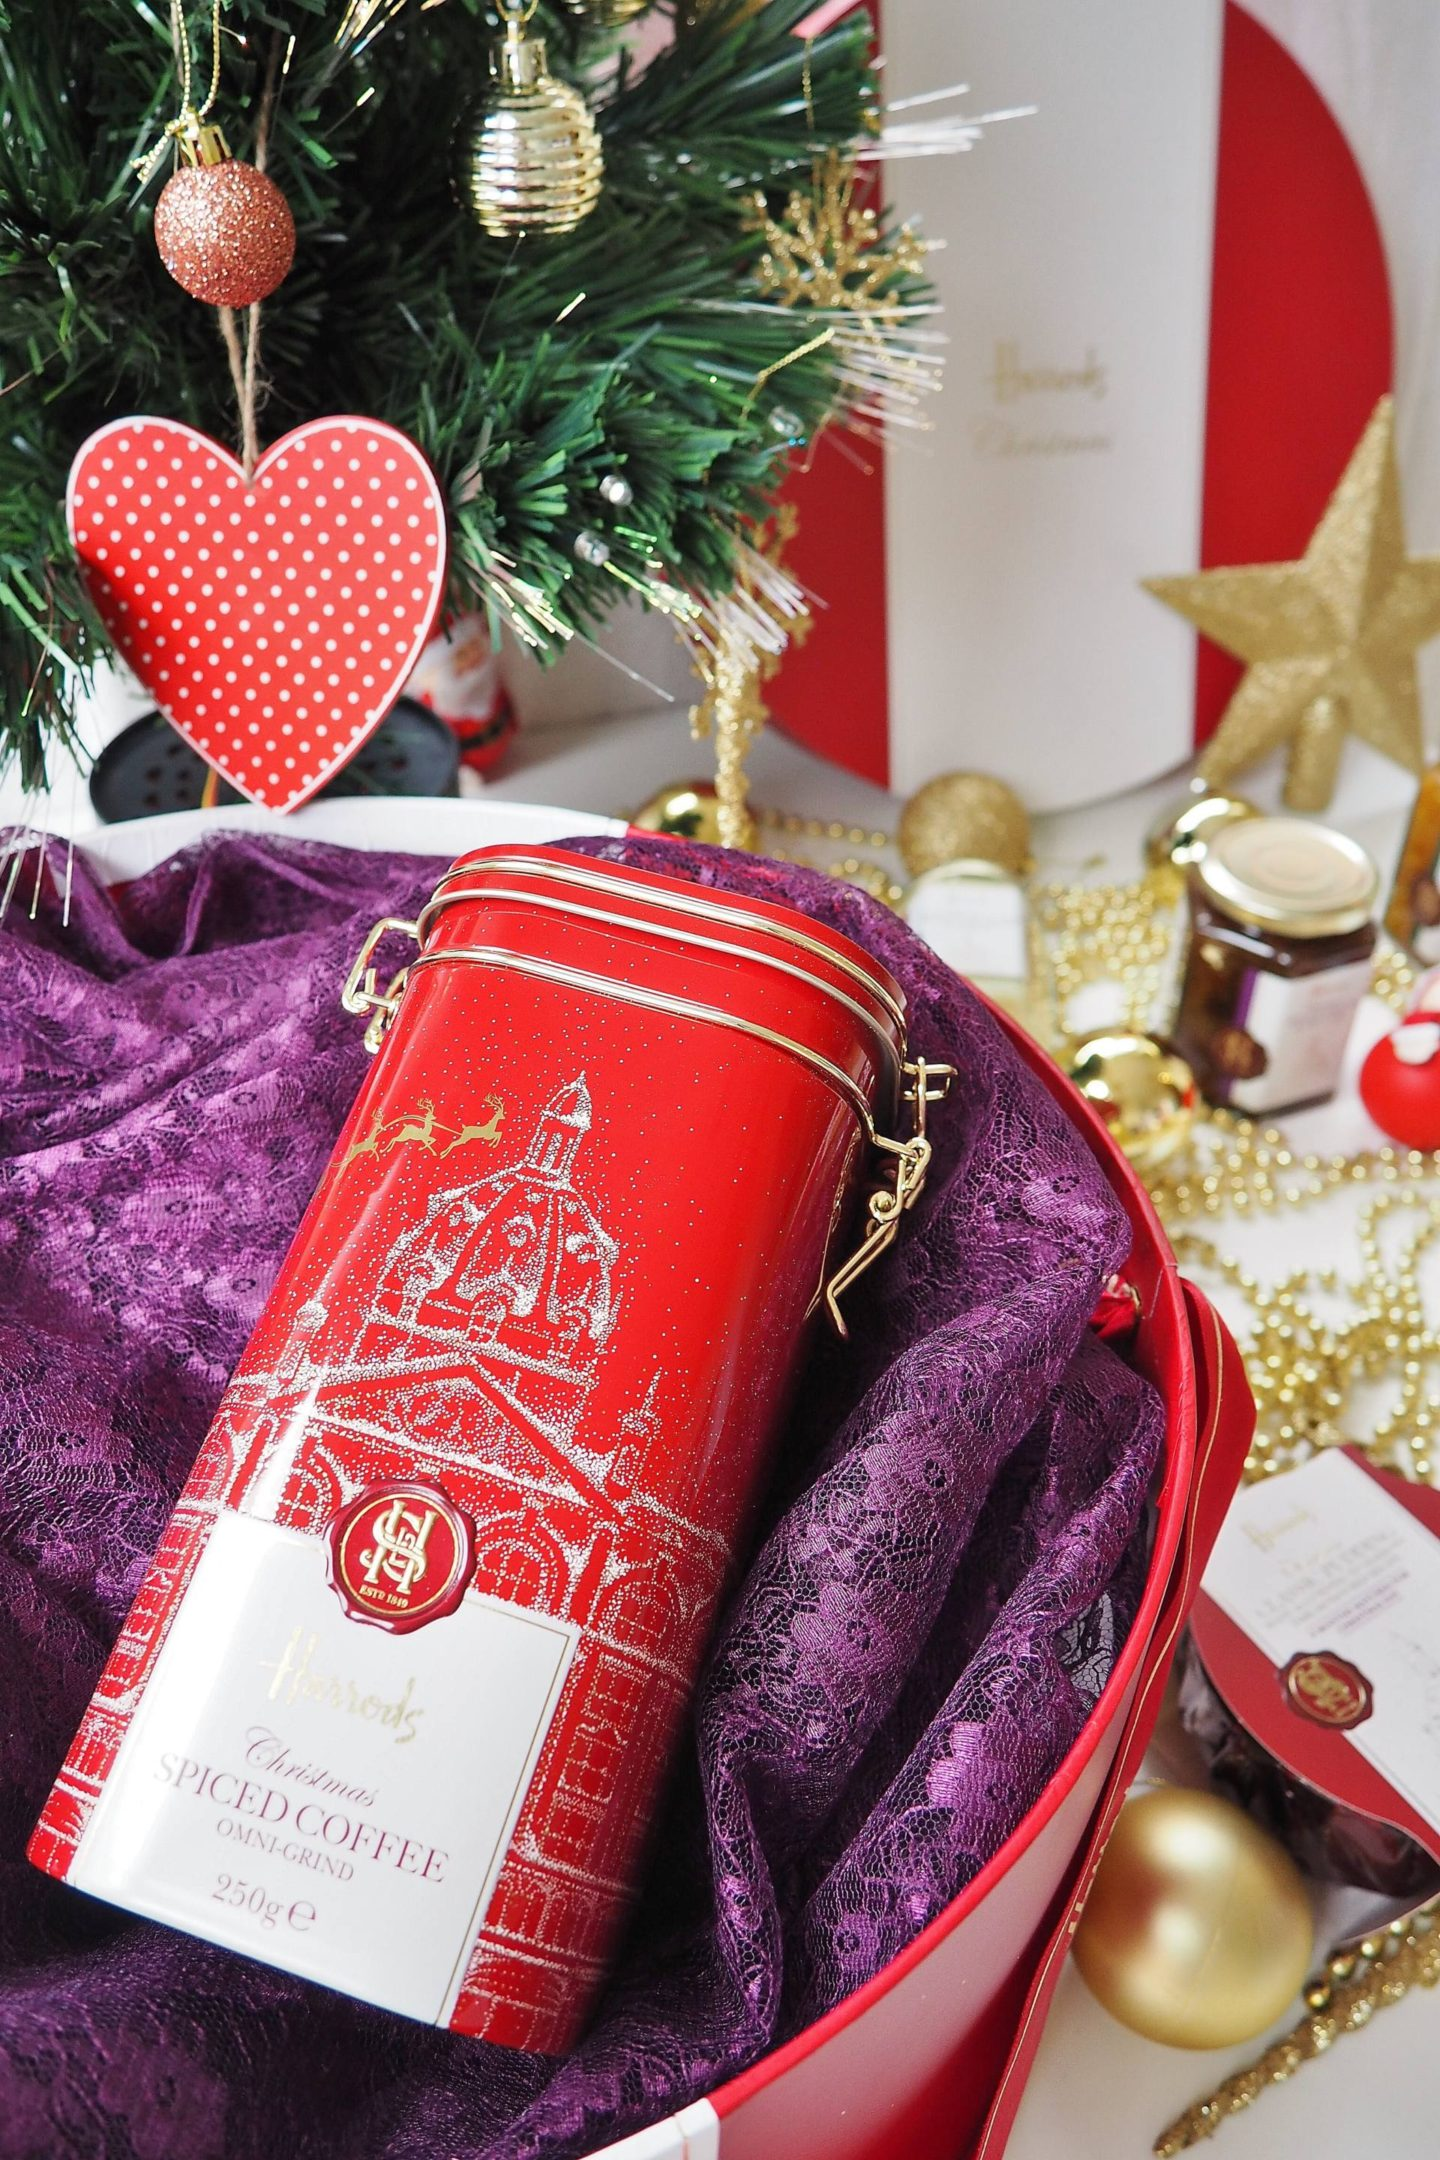 Emma Victoria Stokes Harrods Christmas Hamper Box Blog Review Coffee